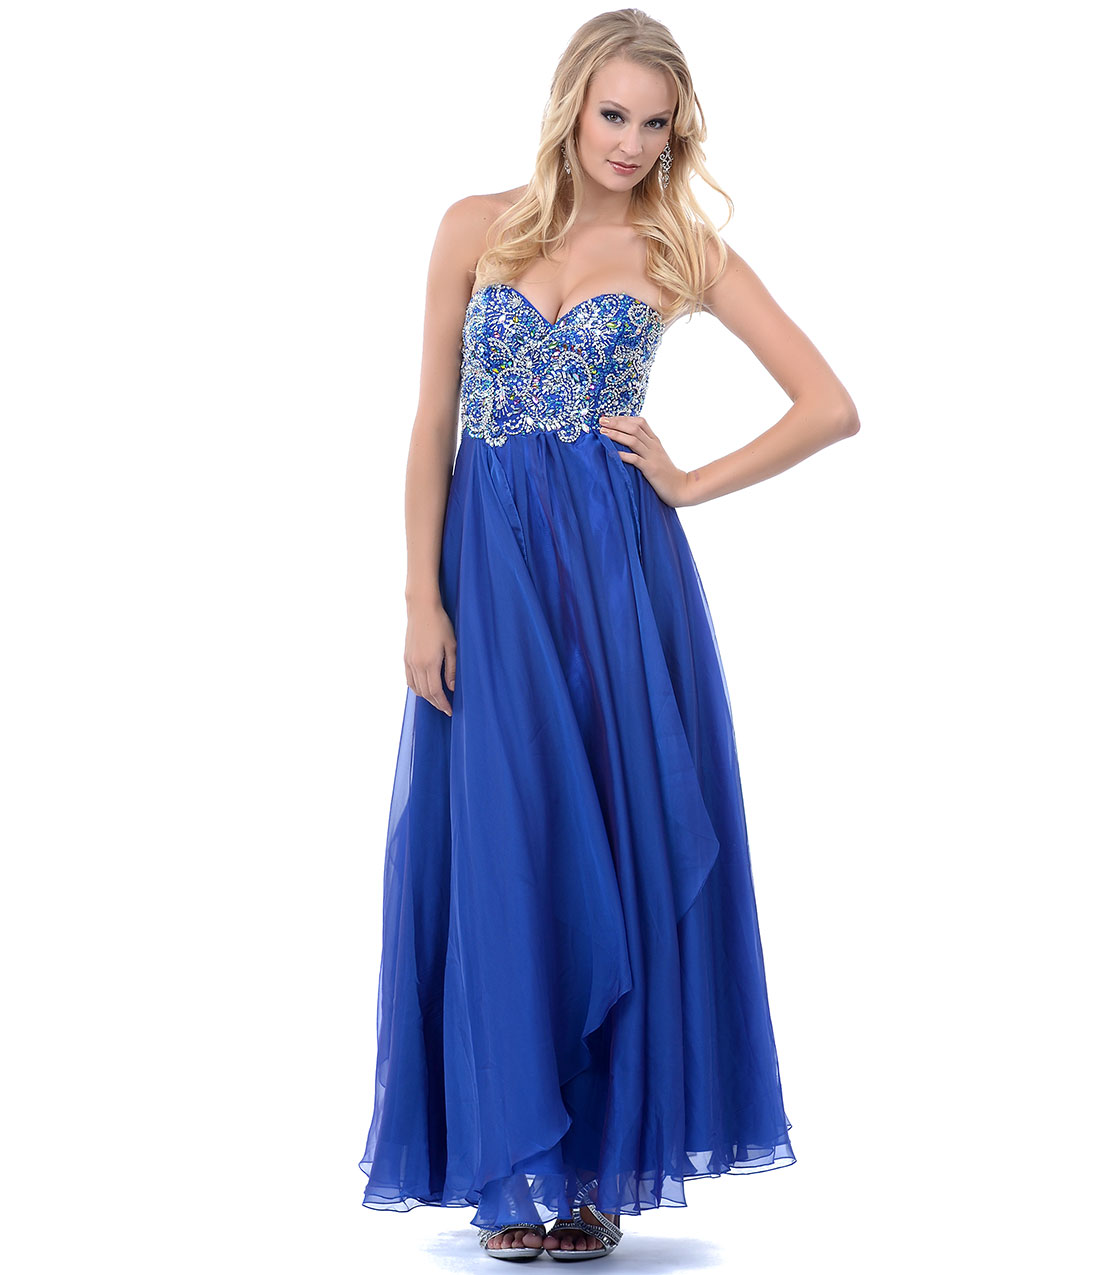 Prom Dresses - Blue Sapphire Jewel Beaded Long Strapless Prom ...